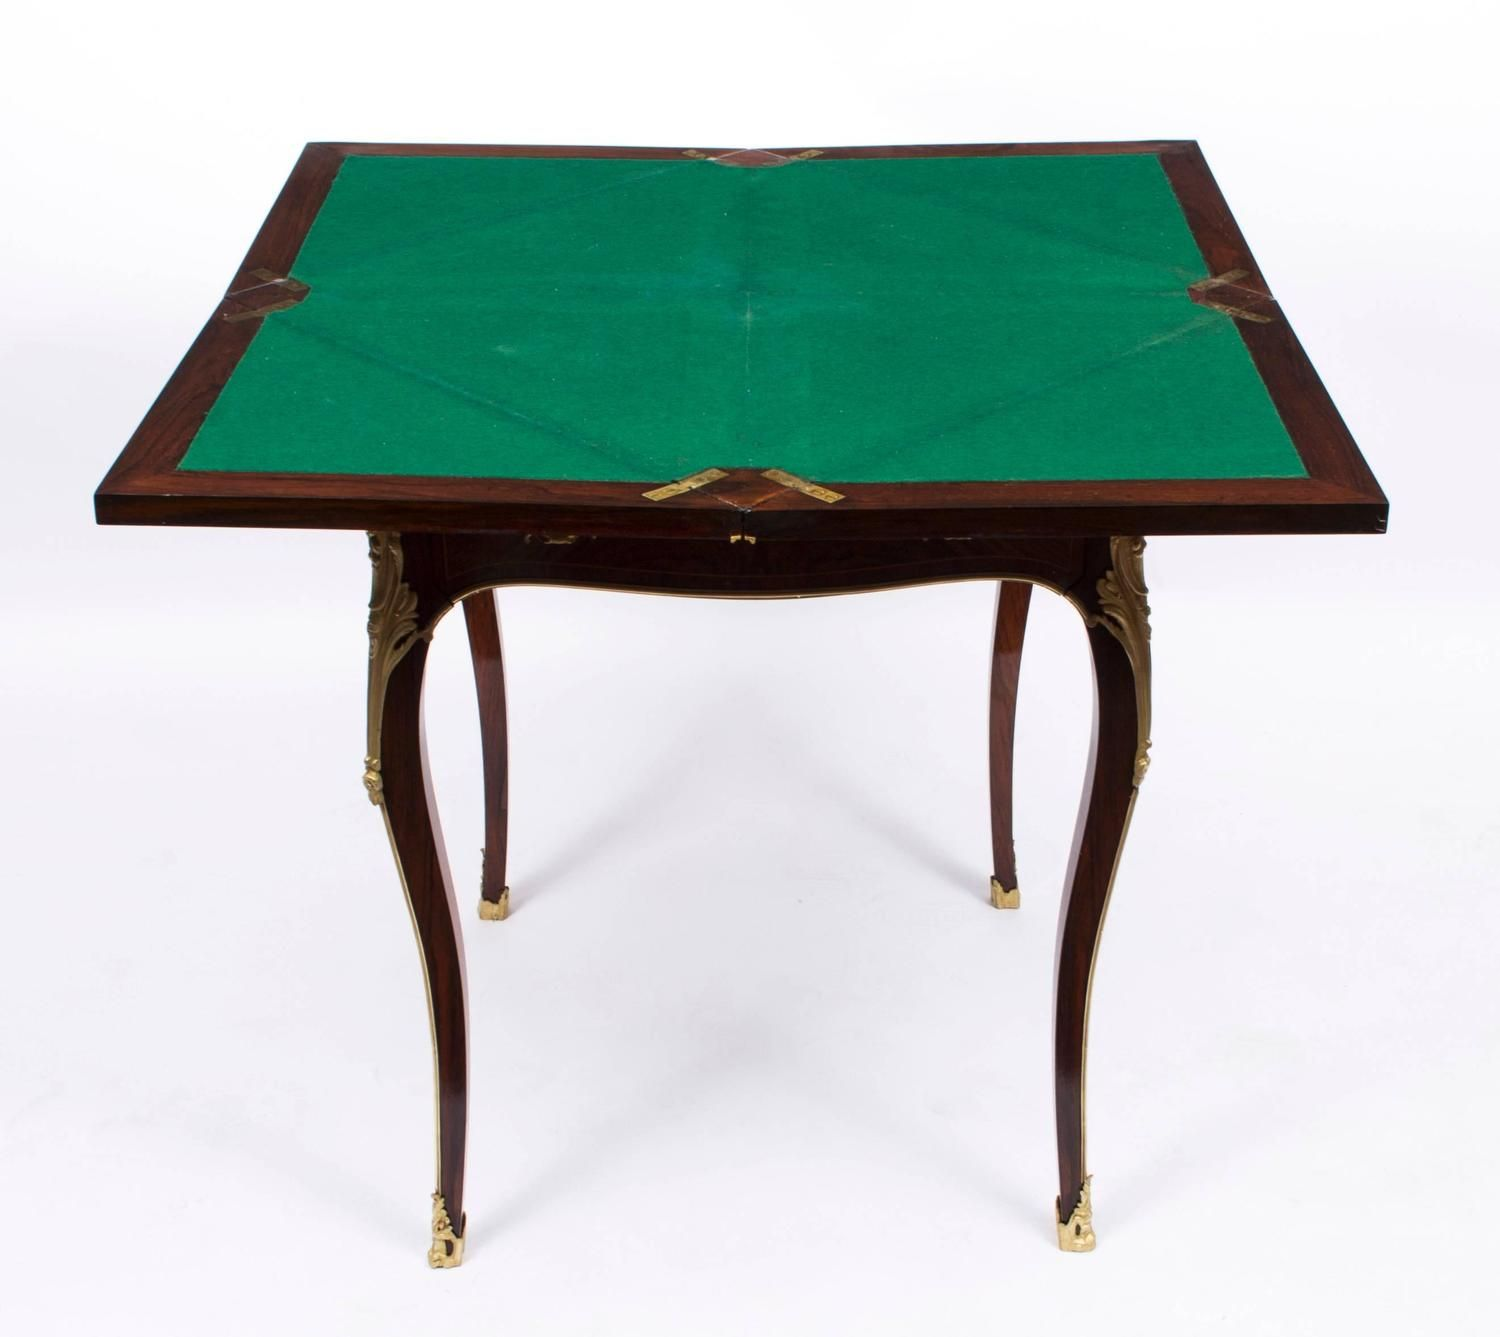 19th Century Victorian Rosewood And Ormolu Envelope Card Table Modern Game Tables Bars For Home Table Furniture